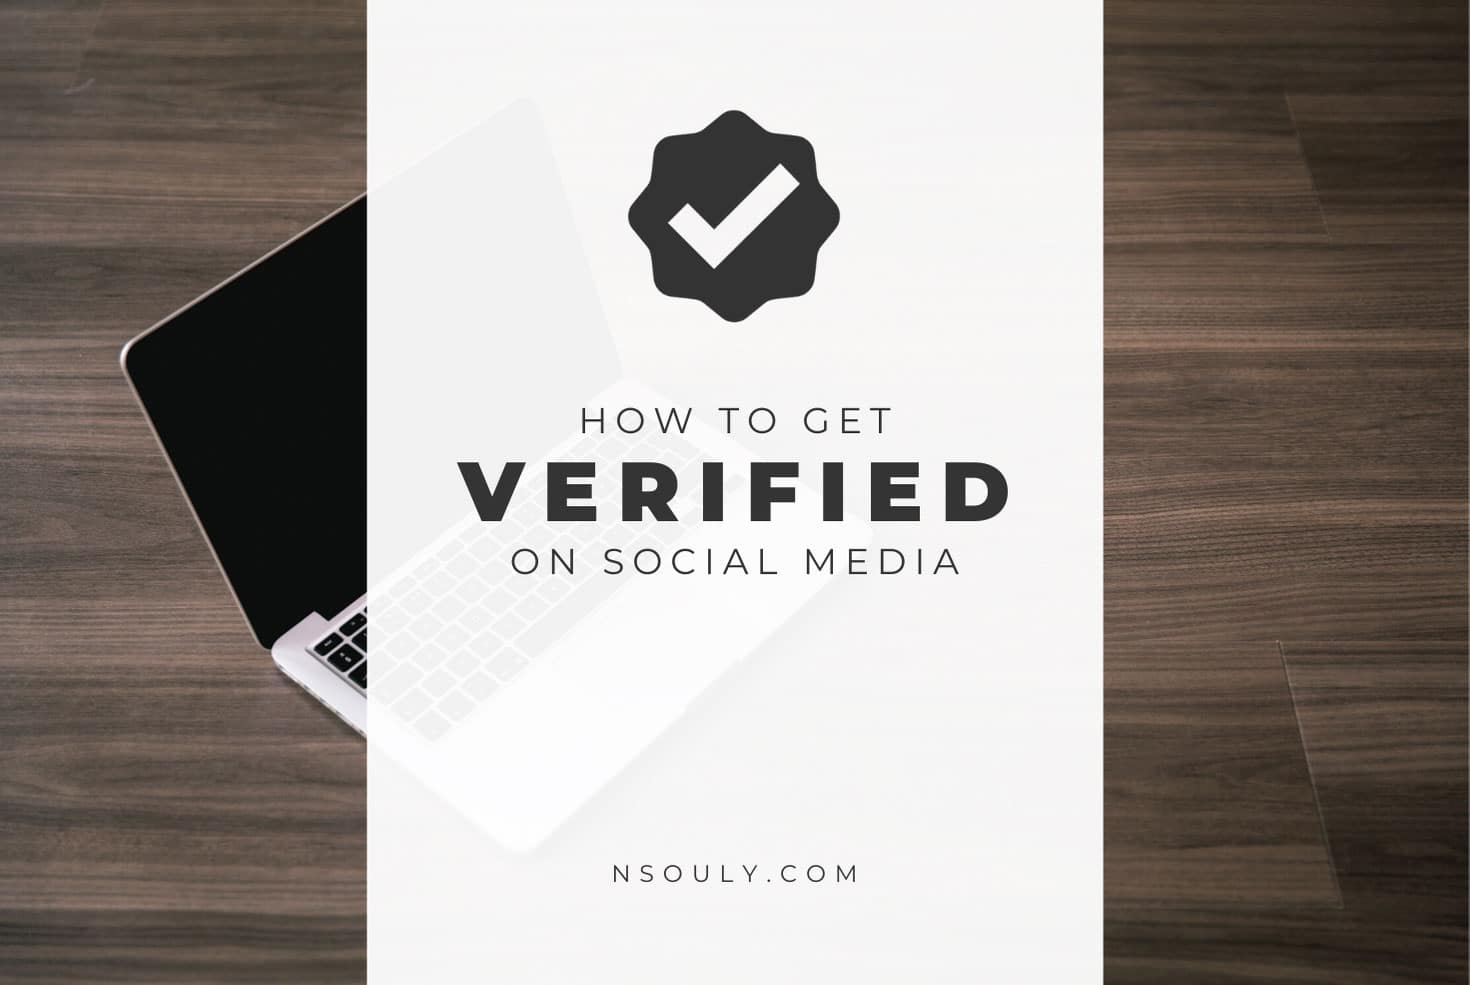 Social Media Verification: How To Get Verified on Social Media